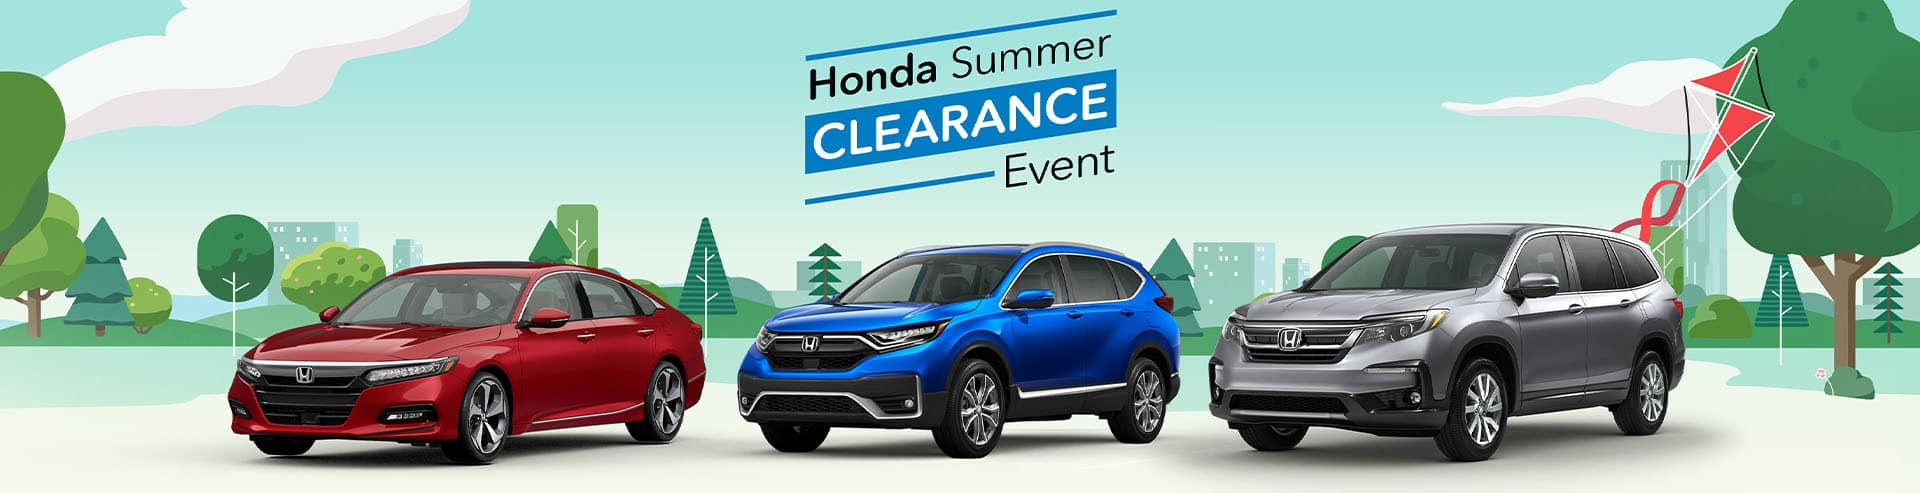 Honda Summer Clearance St Louis Lease Specials